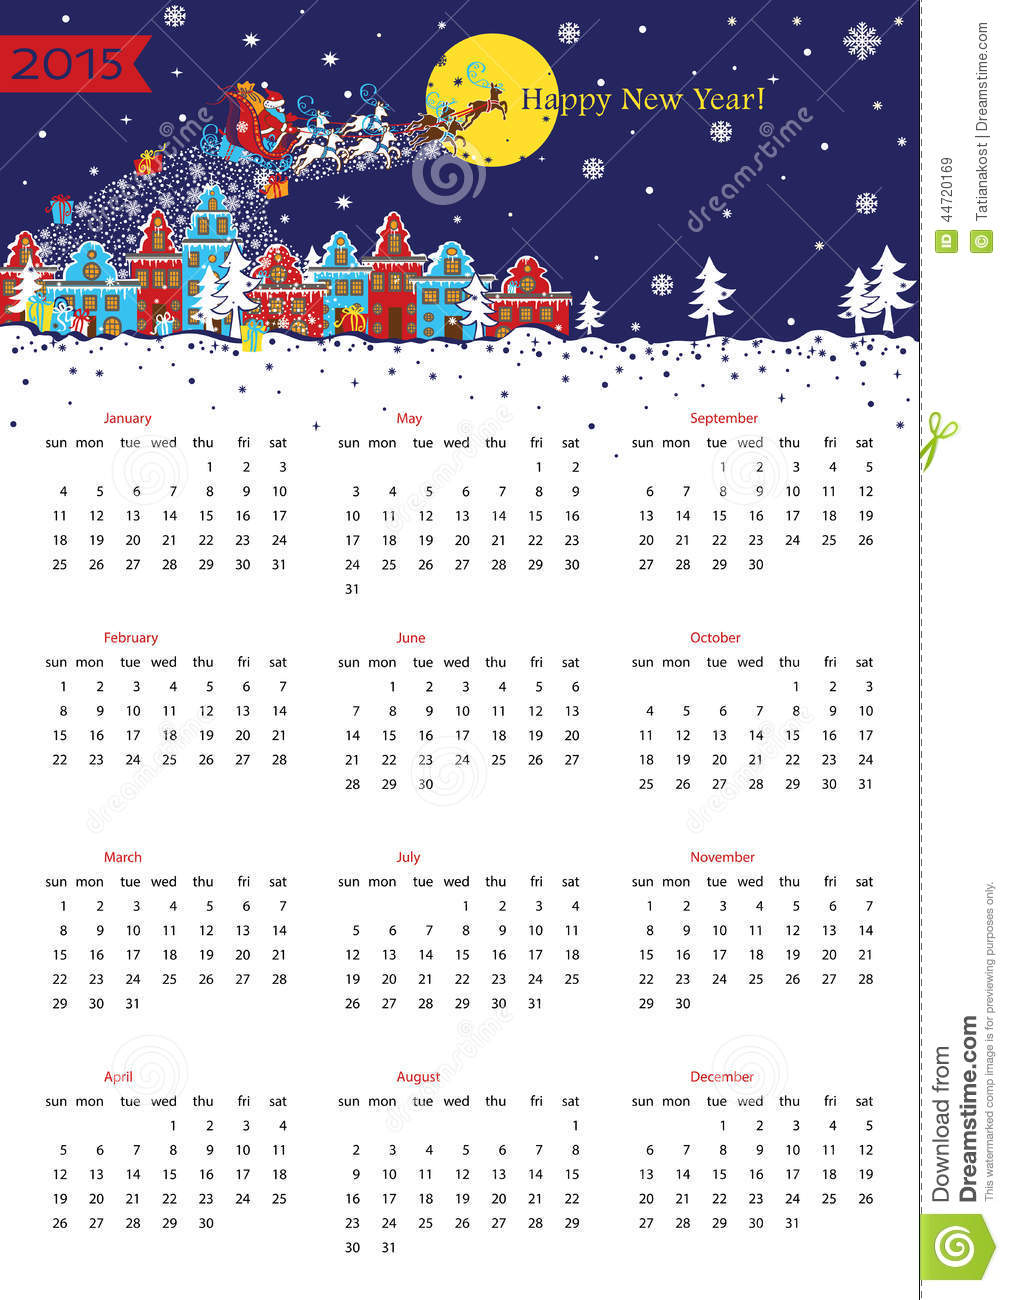 Happy new year 2015 european calendar stock vector image 44720169 - Happy new year sound europe ...